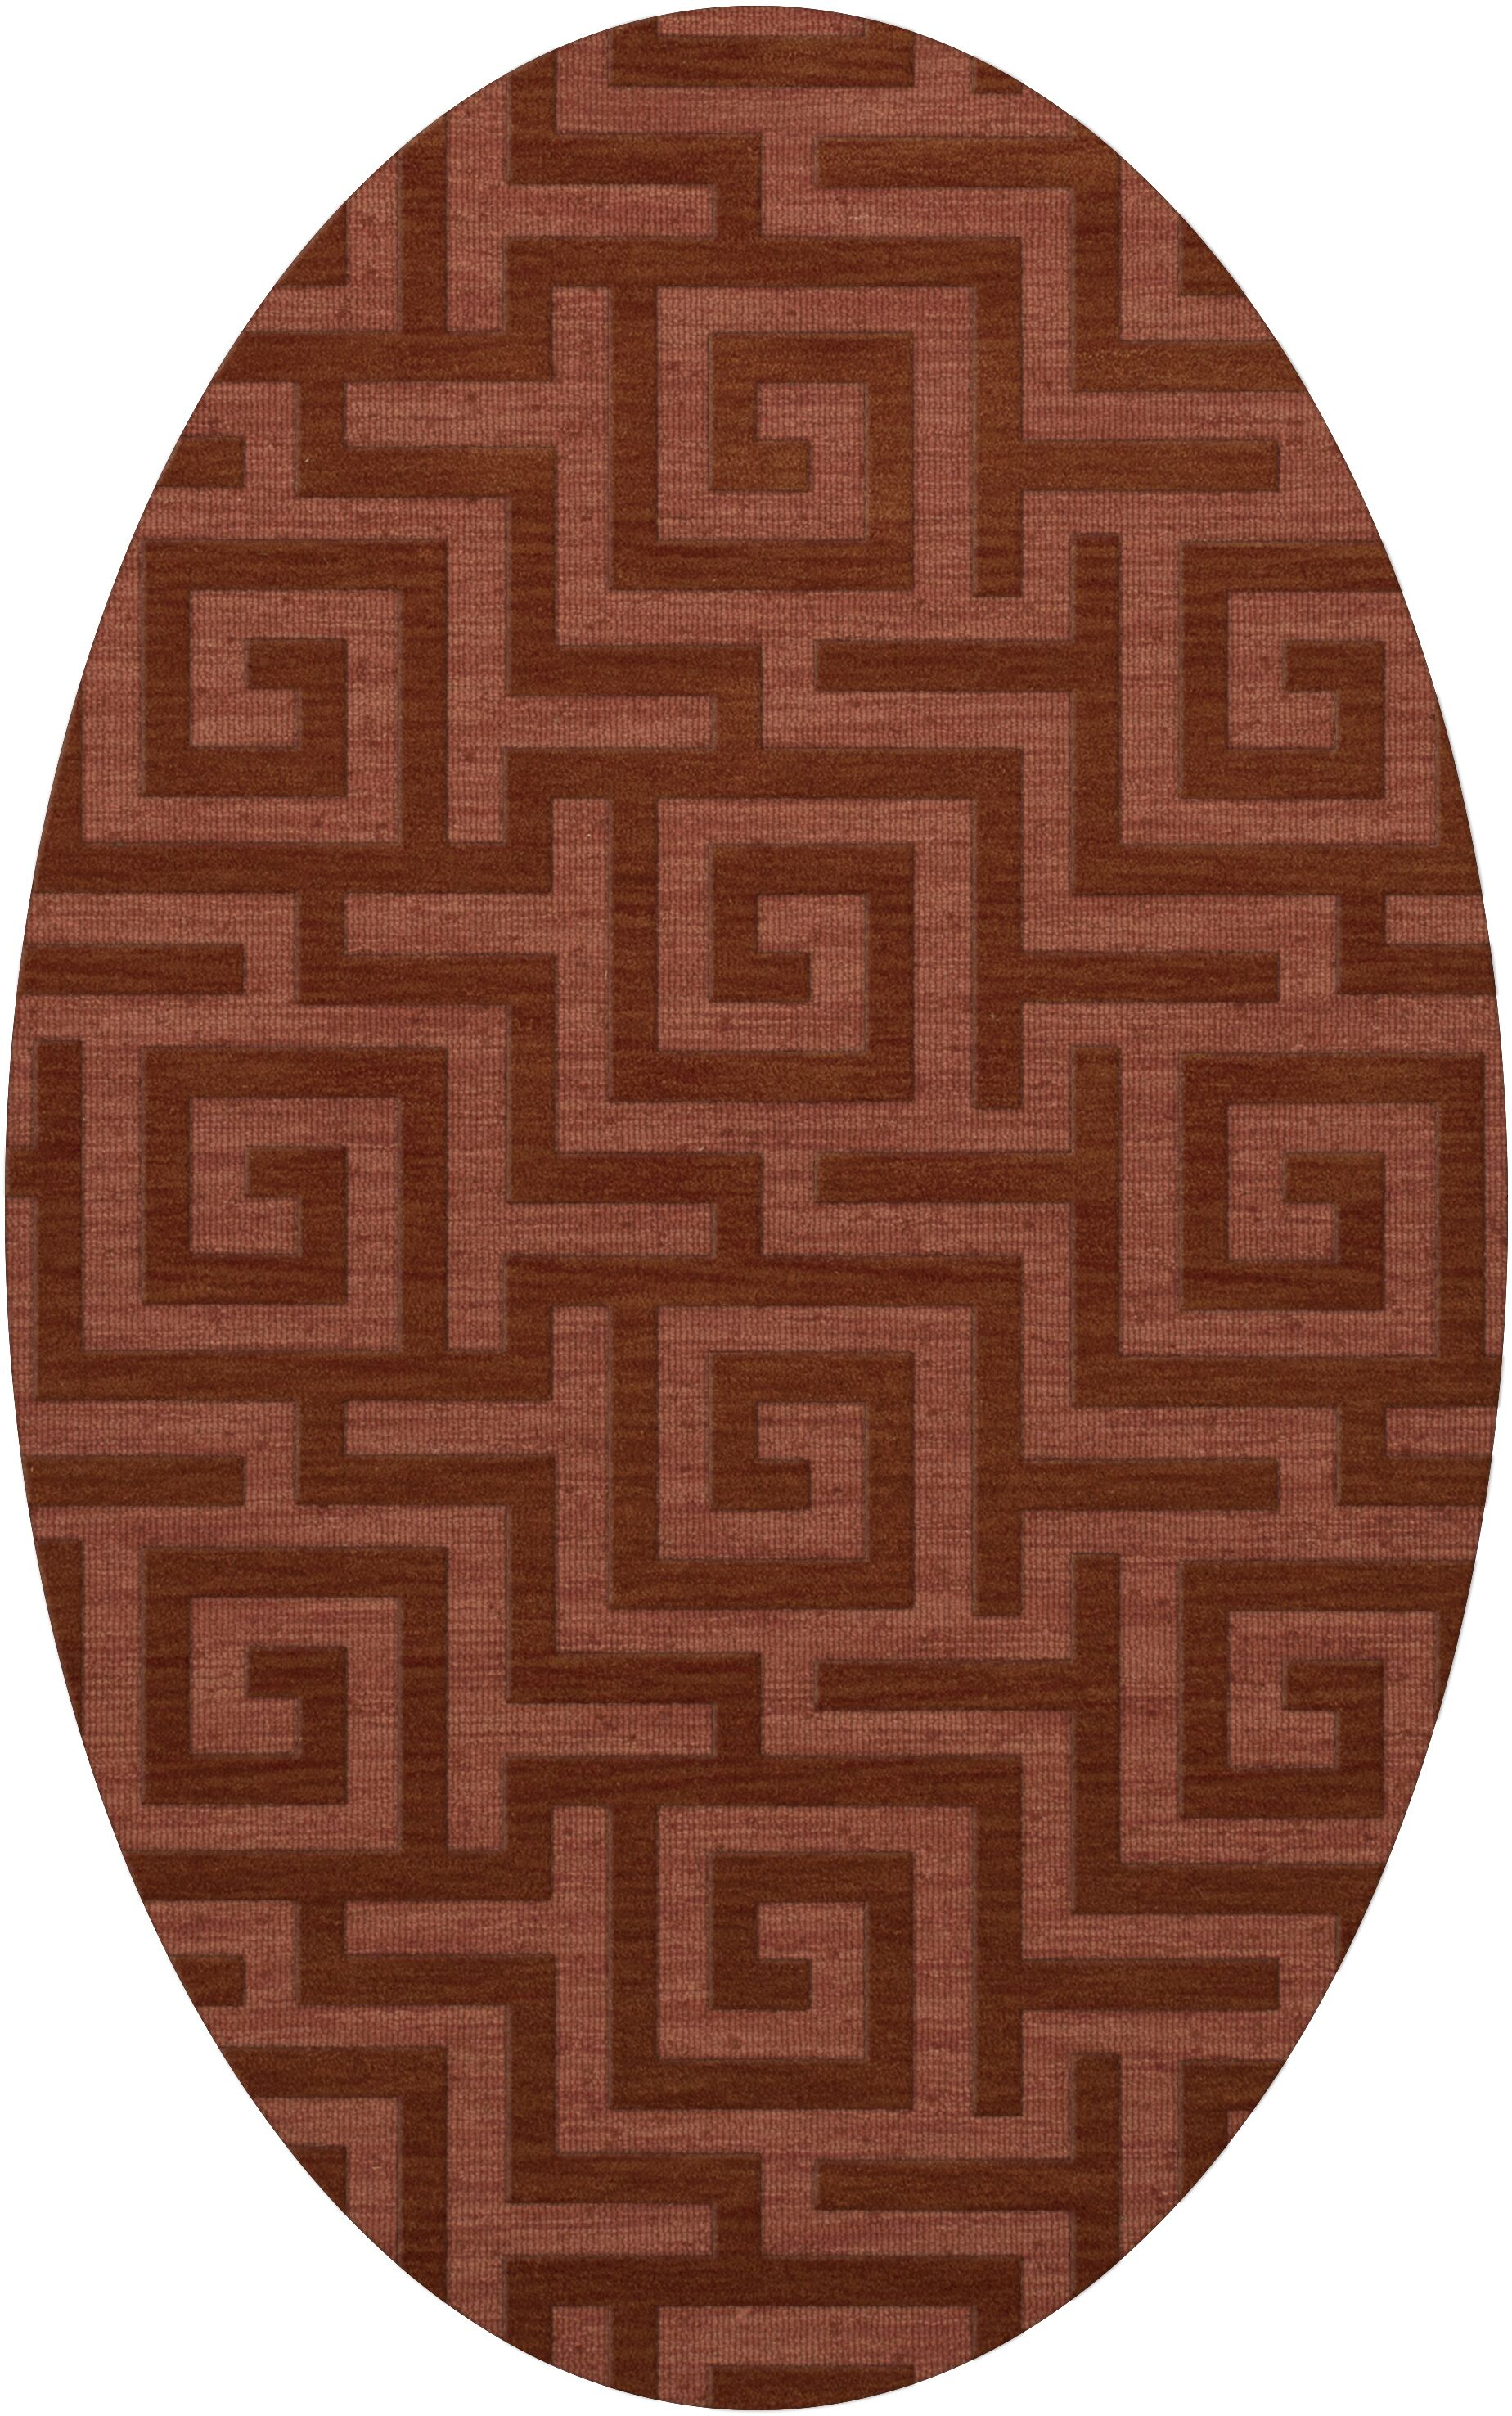 Dover Tufted Wool Coral Area Rug Rug Size: Oval 9' x 12'